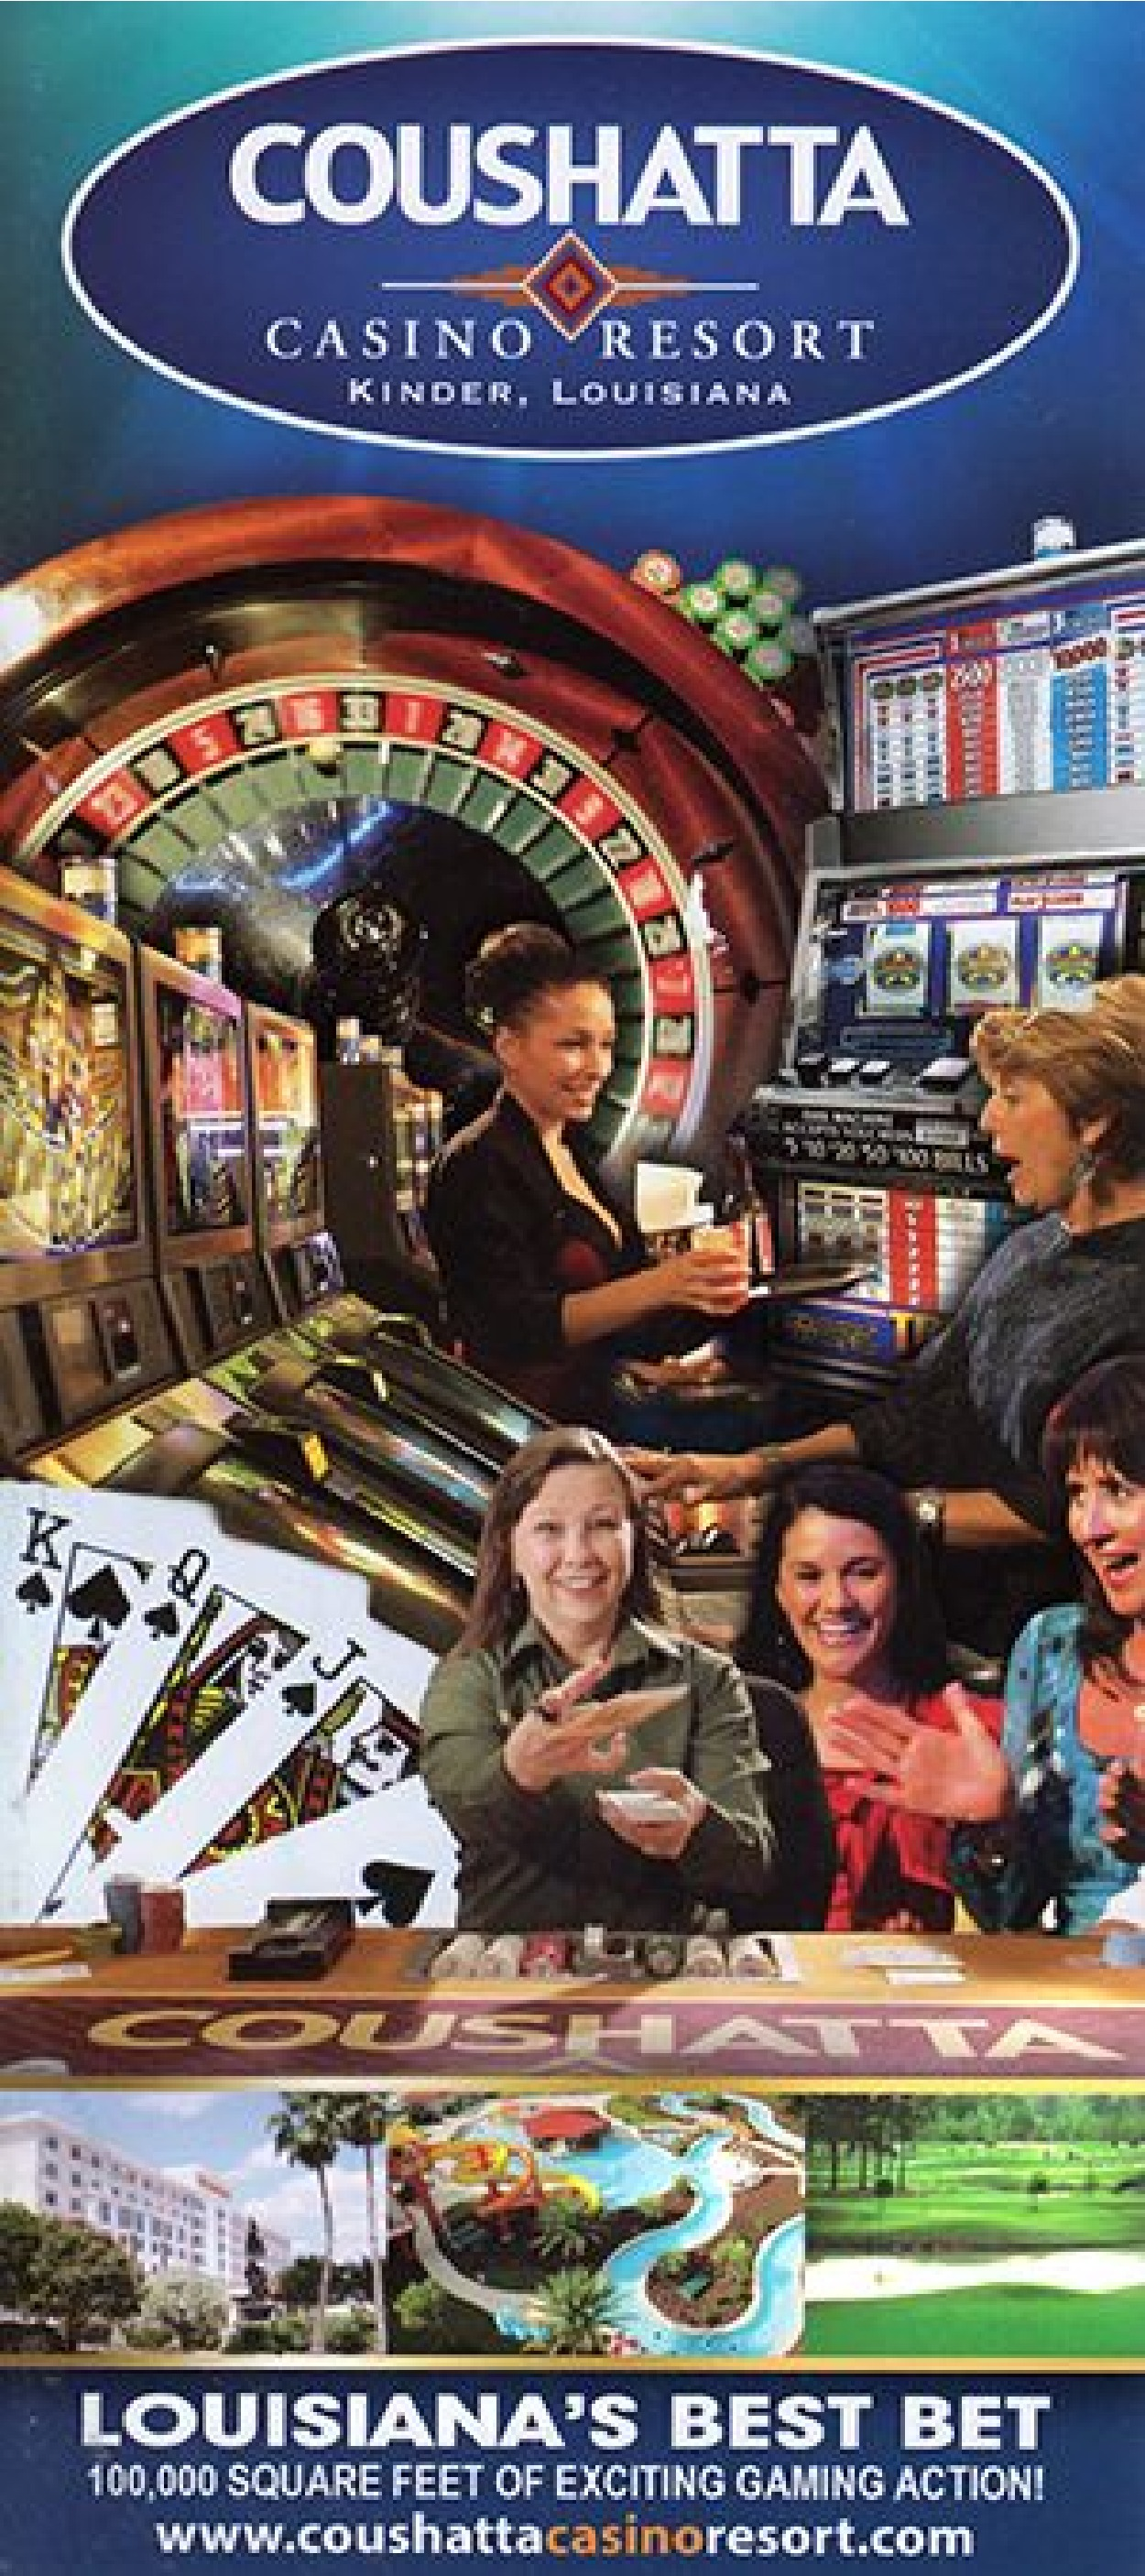 nightlife fun casino and holdem poker services